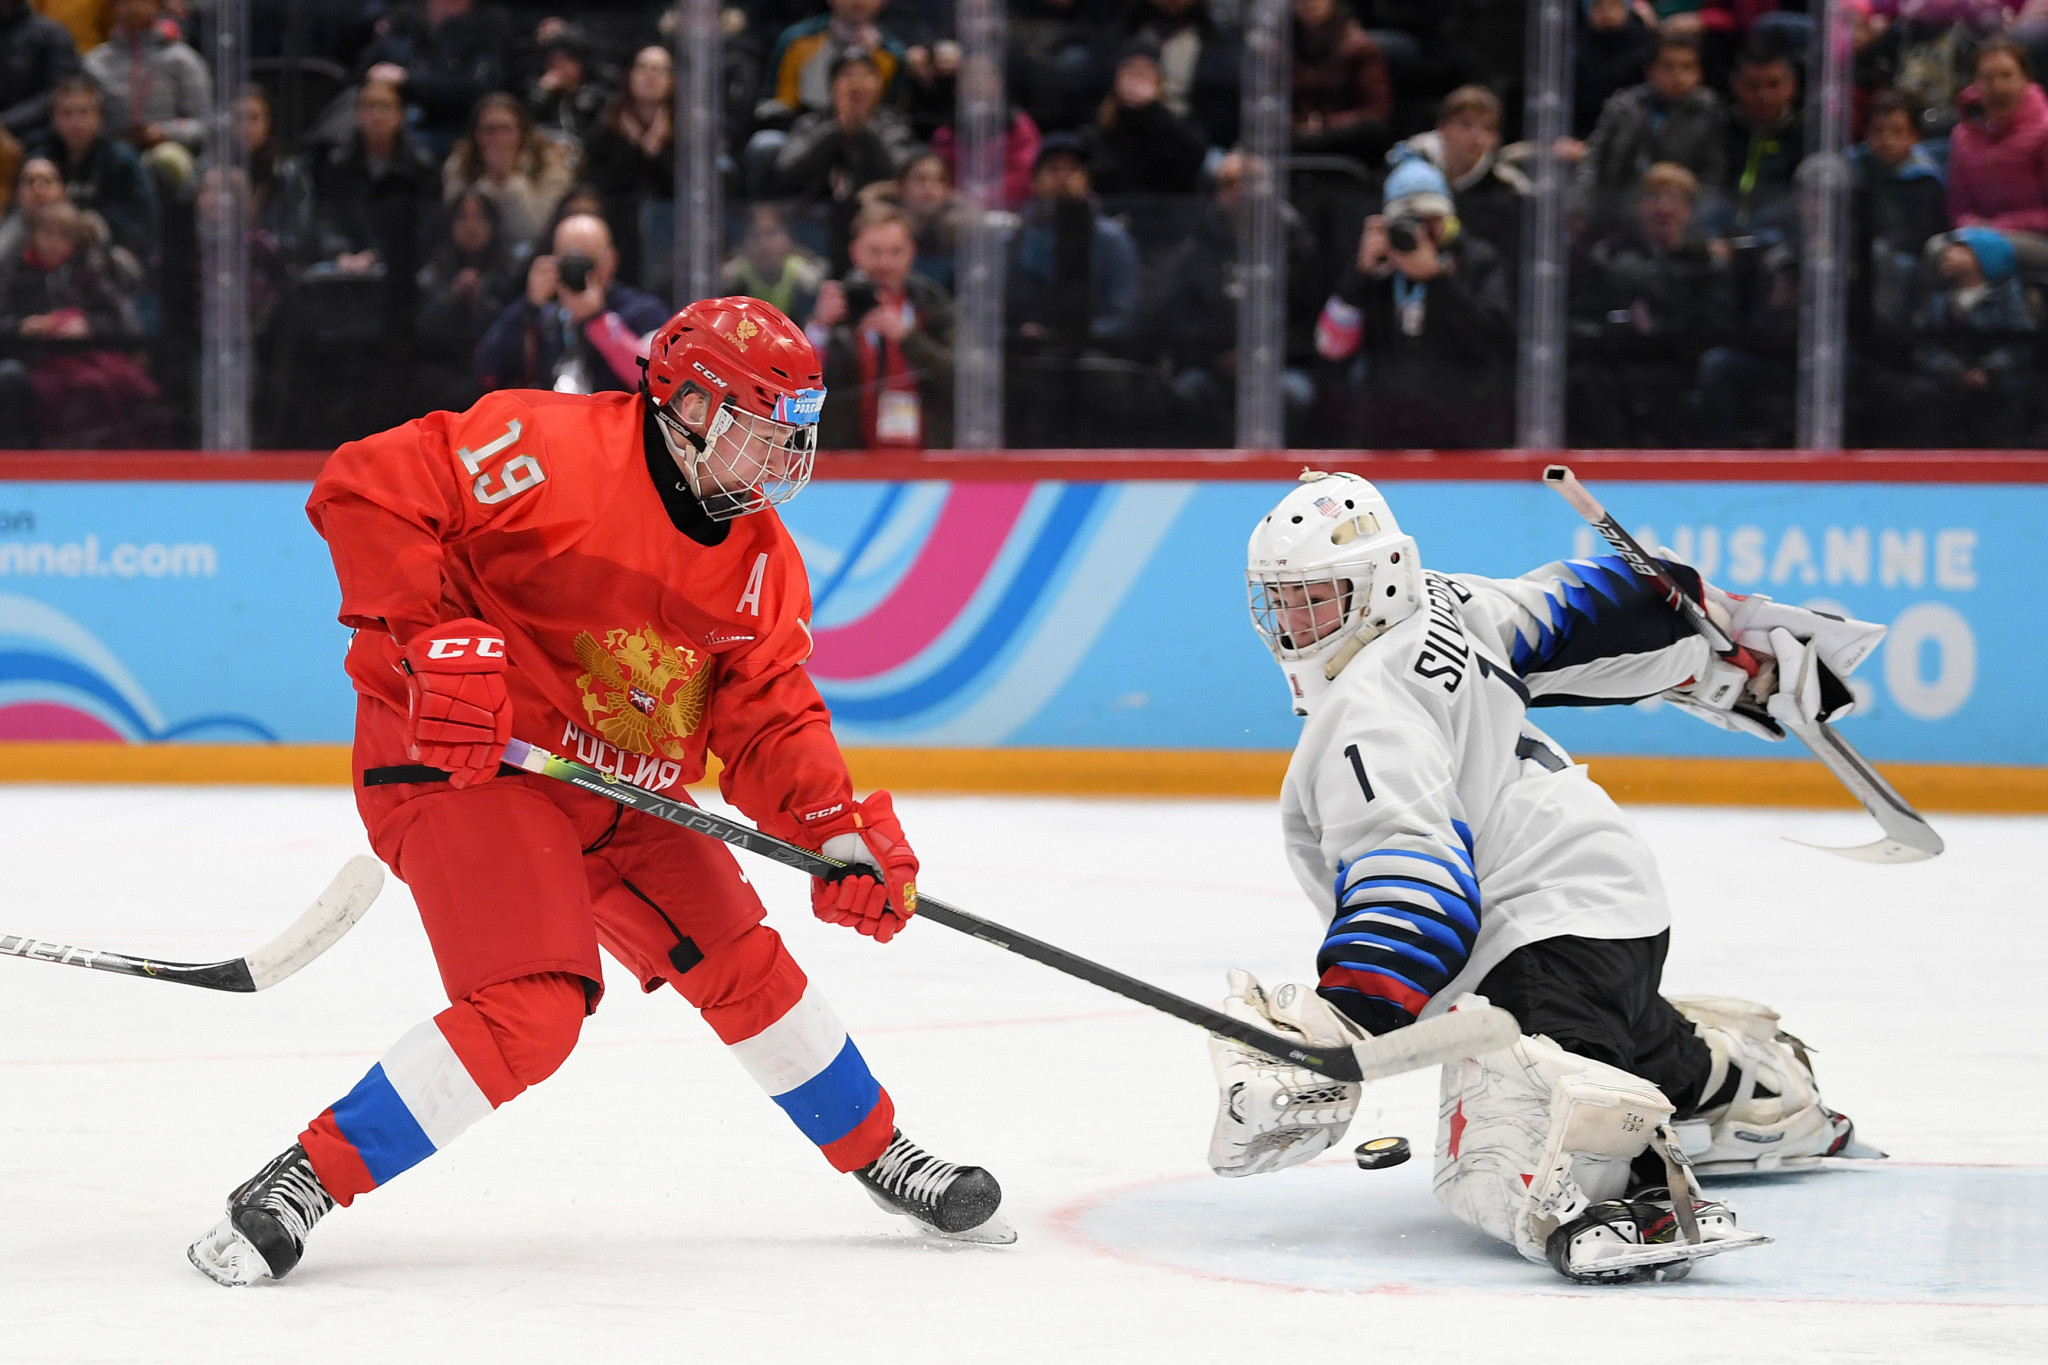 Matvei Michkov scored twice to end as the tournament's top scorer ©Getty Images